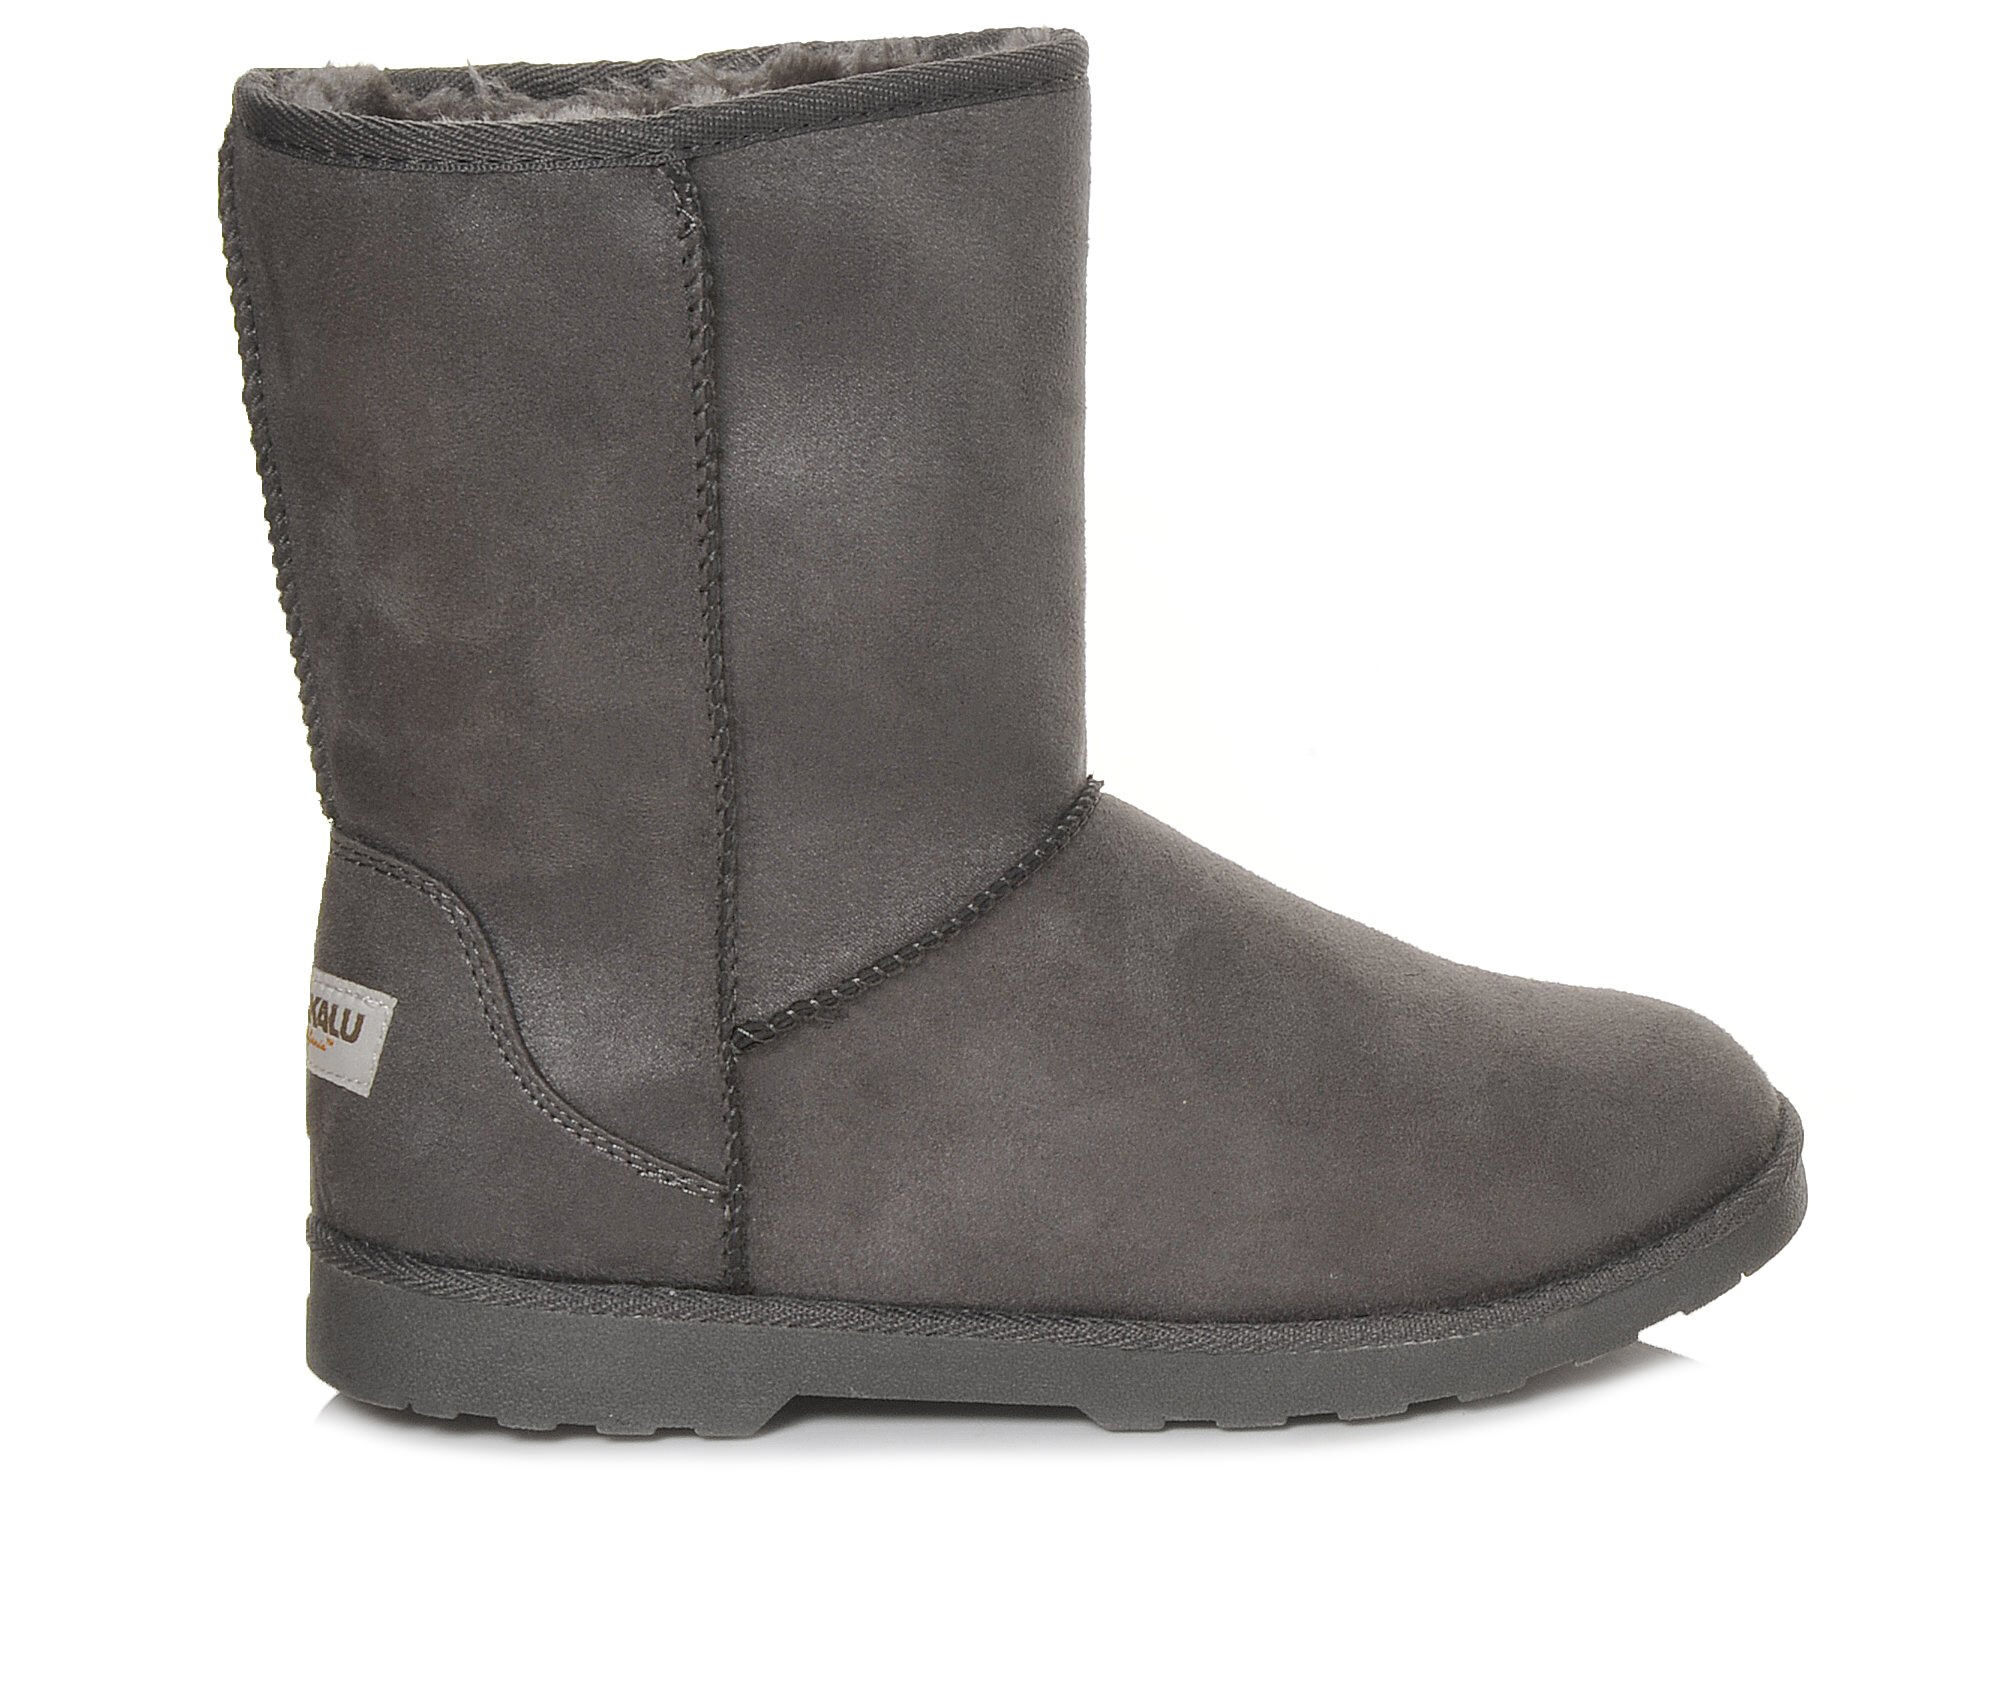 Boots for Booties for WomenWomen's BootsAnkle Boots ulFJcTK135